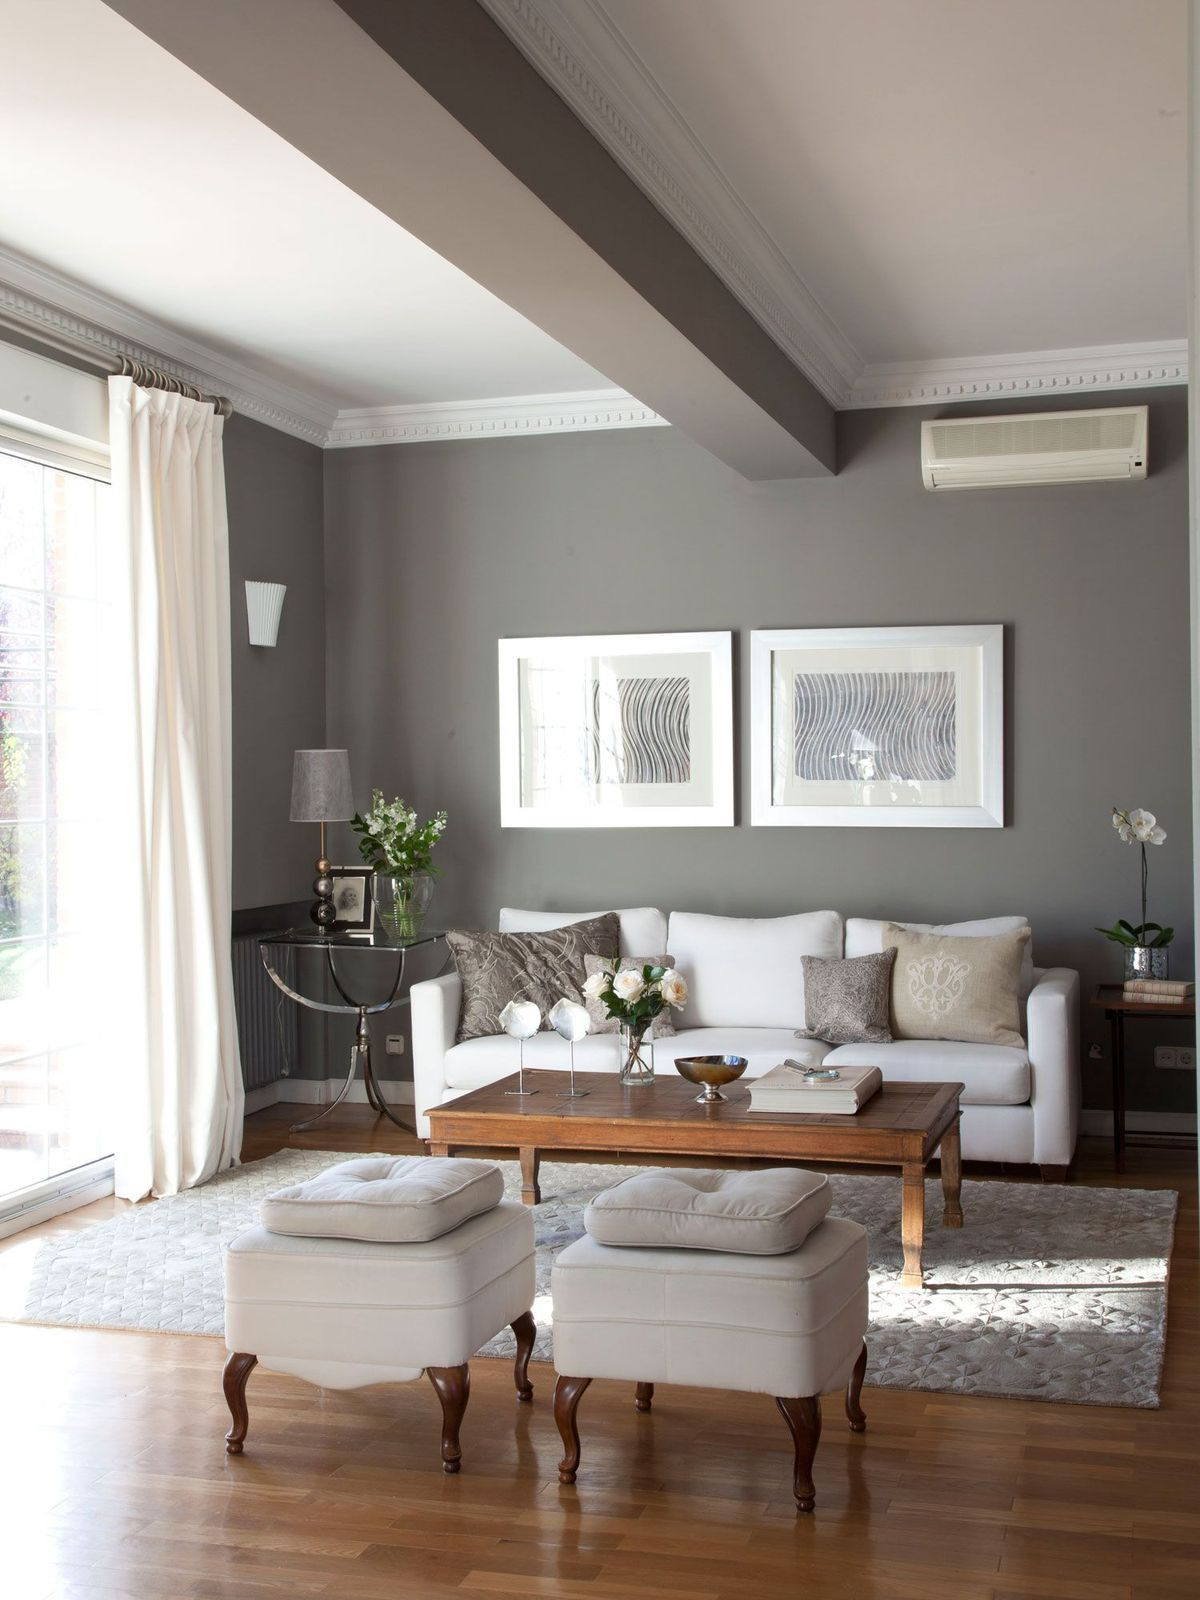 Excellent Free Carpet Living Room plan Ideas We hope you want the